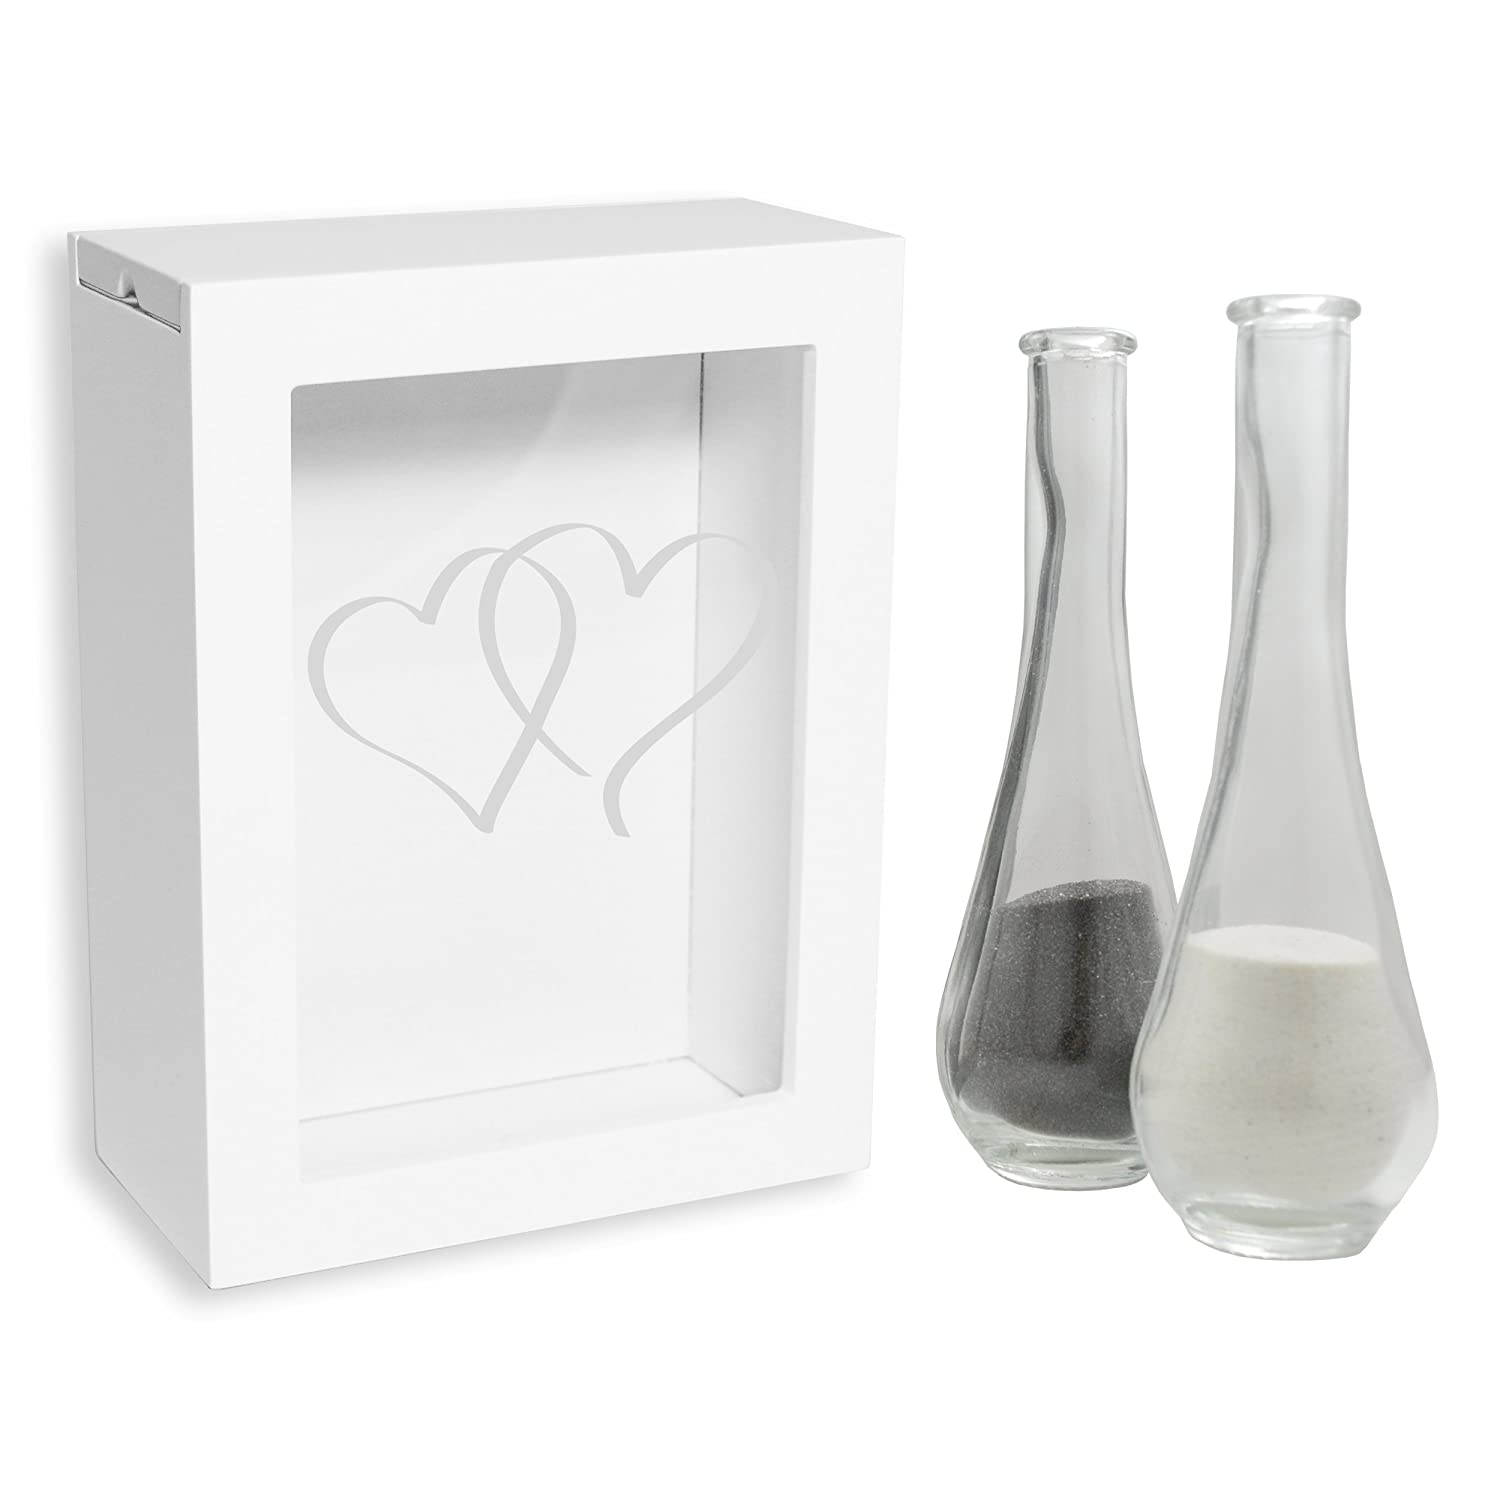 Cathy's Concepts Heart Design Sand Ceremony Shadow Box, White Cathys Concepts HD-PS3917W